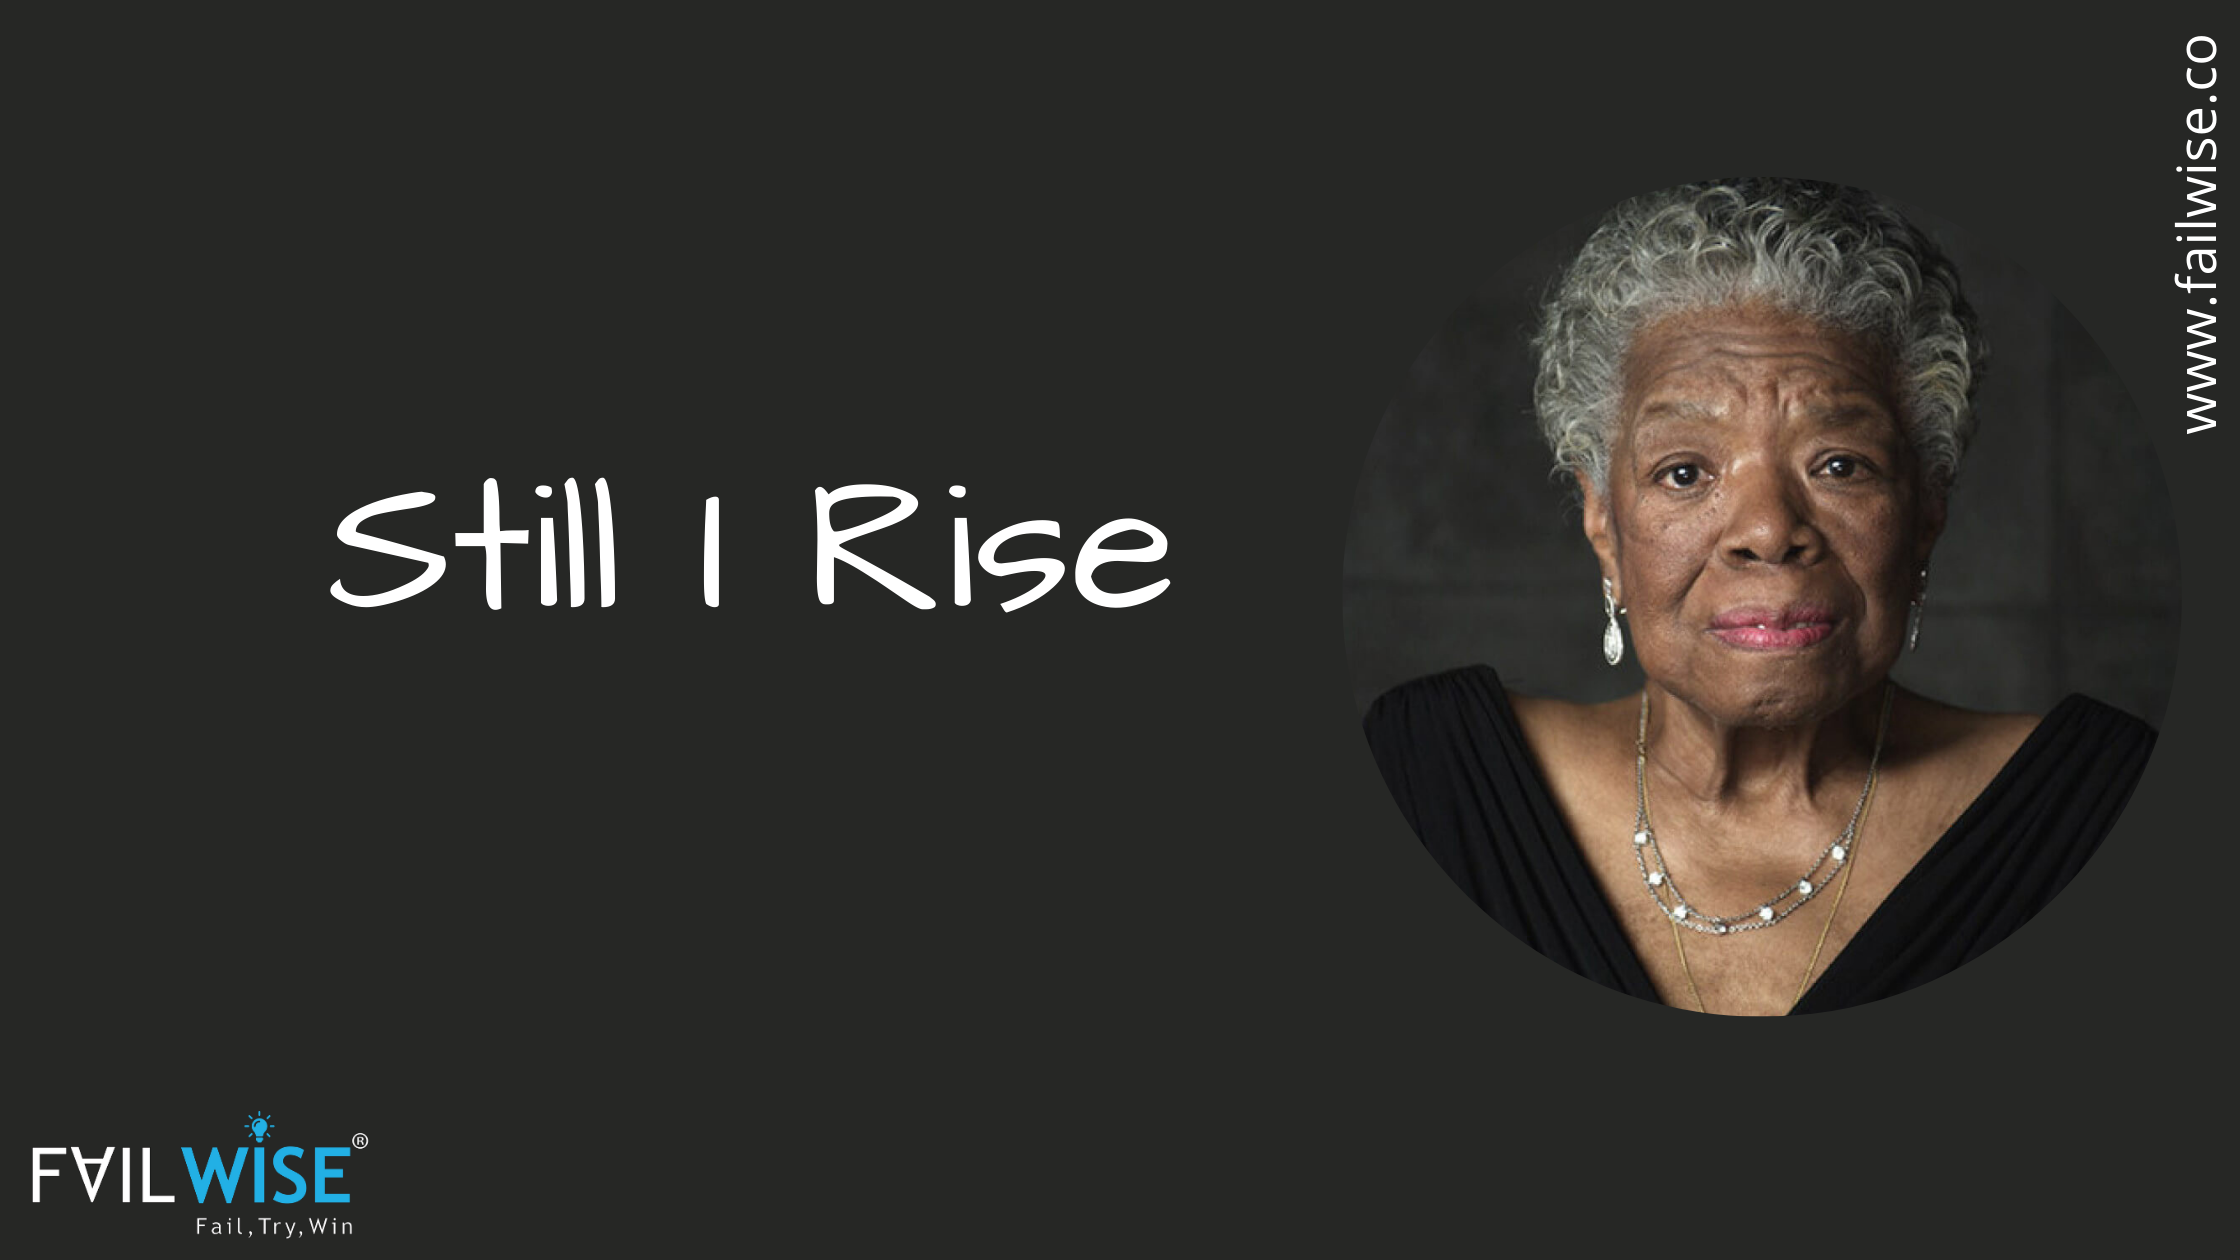 Still I Rise by Maya Angelou